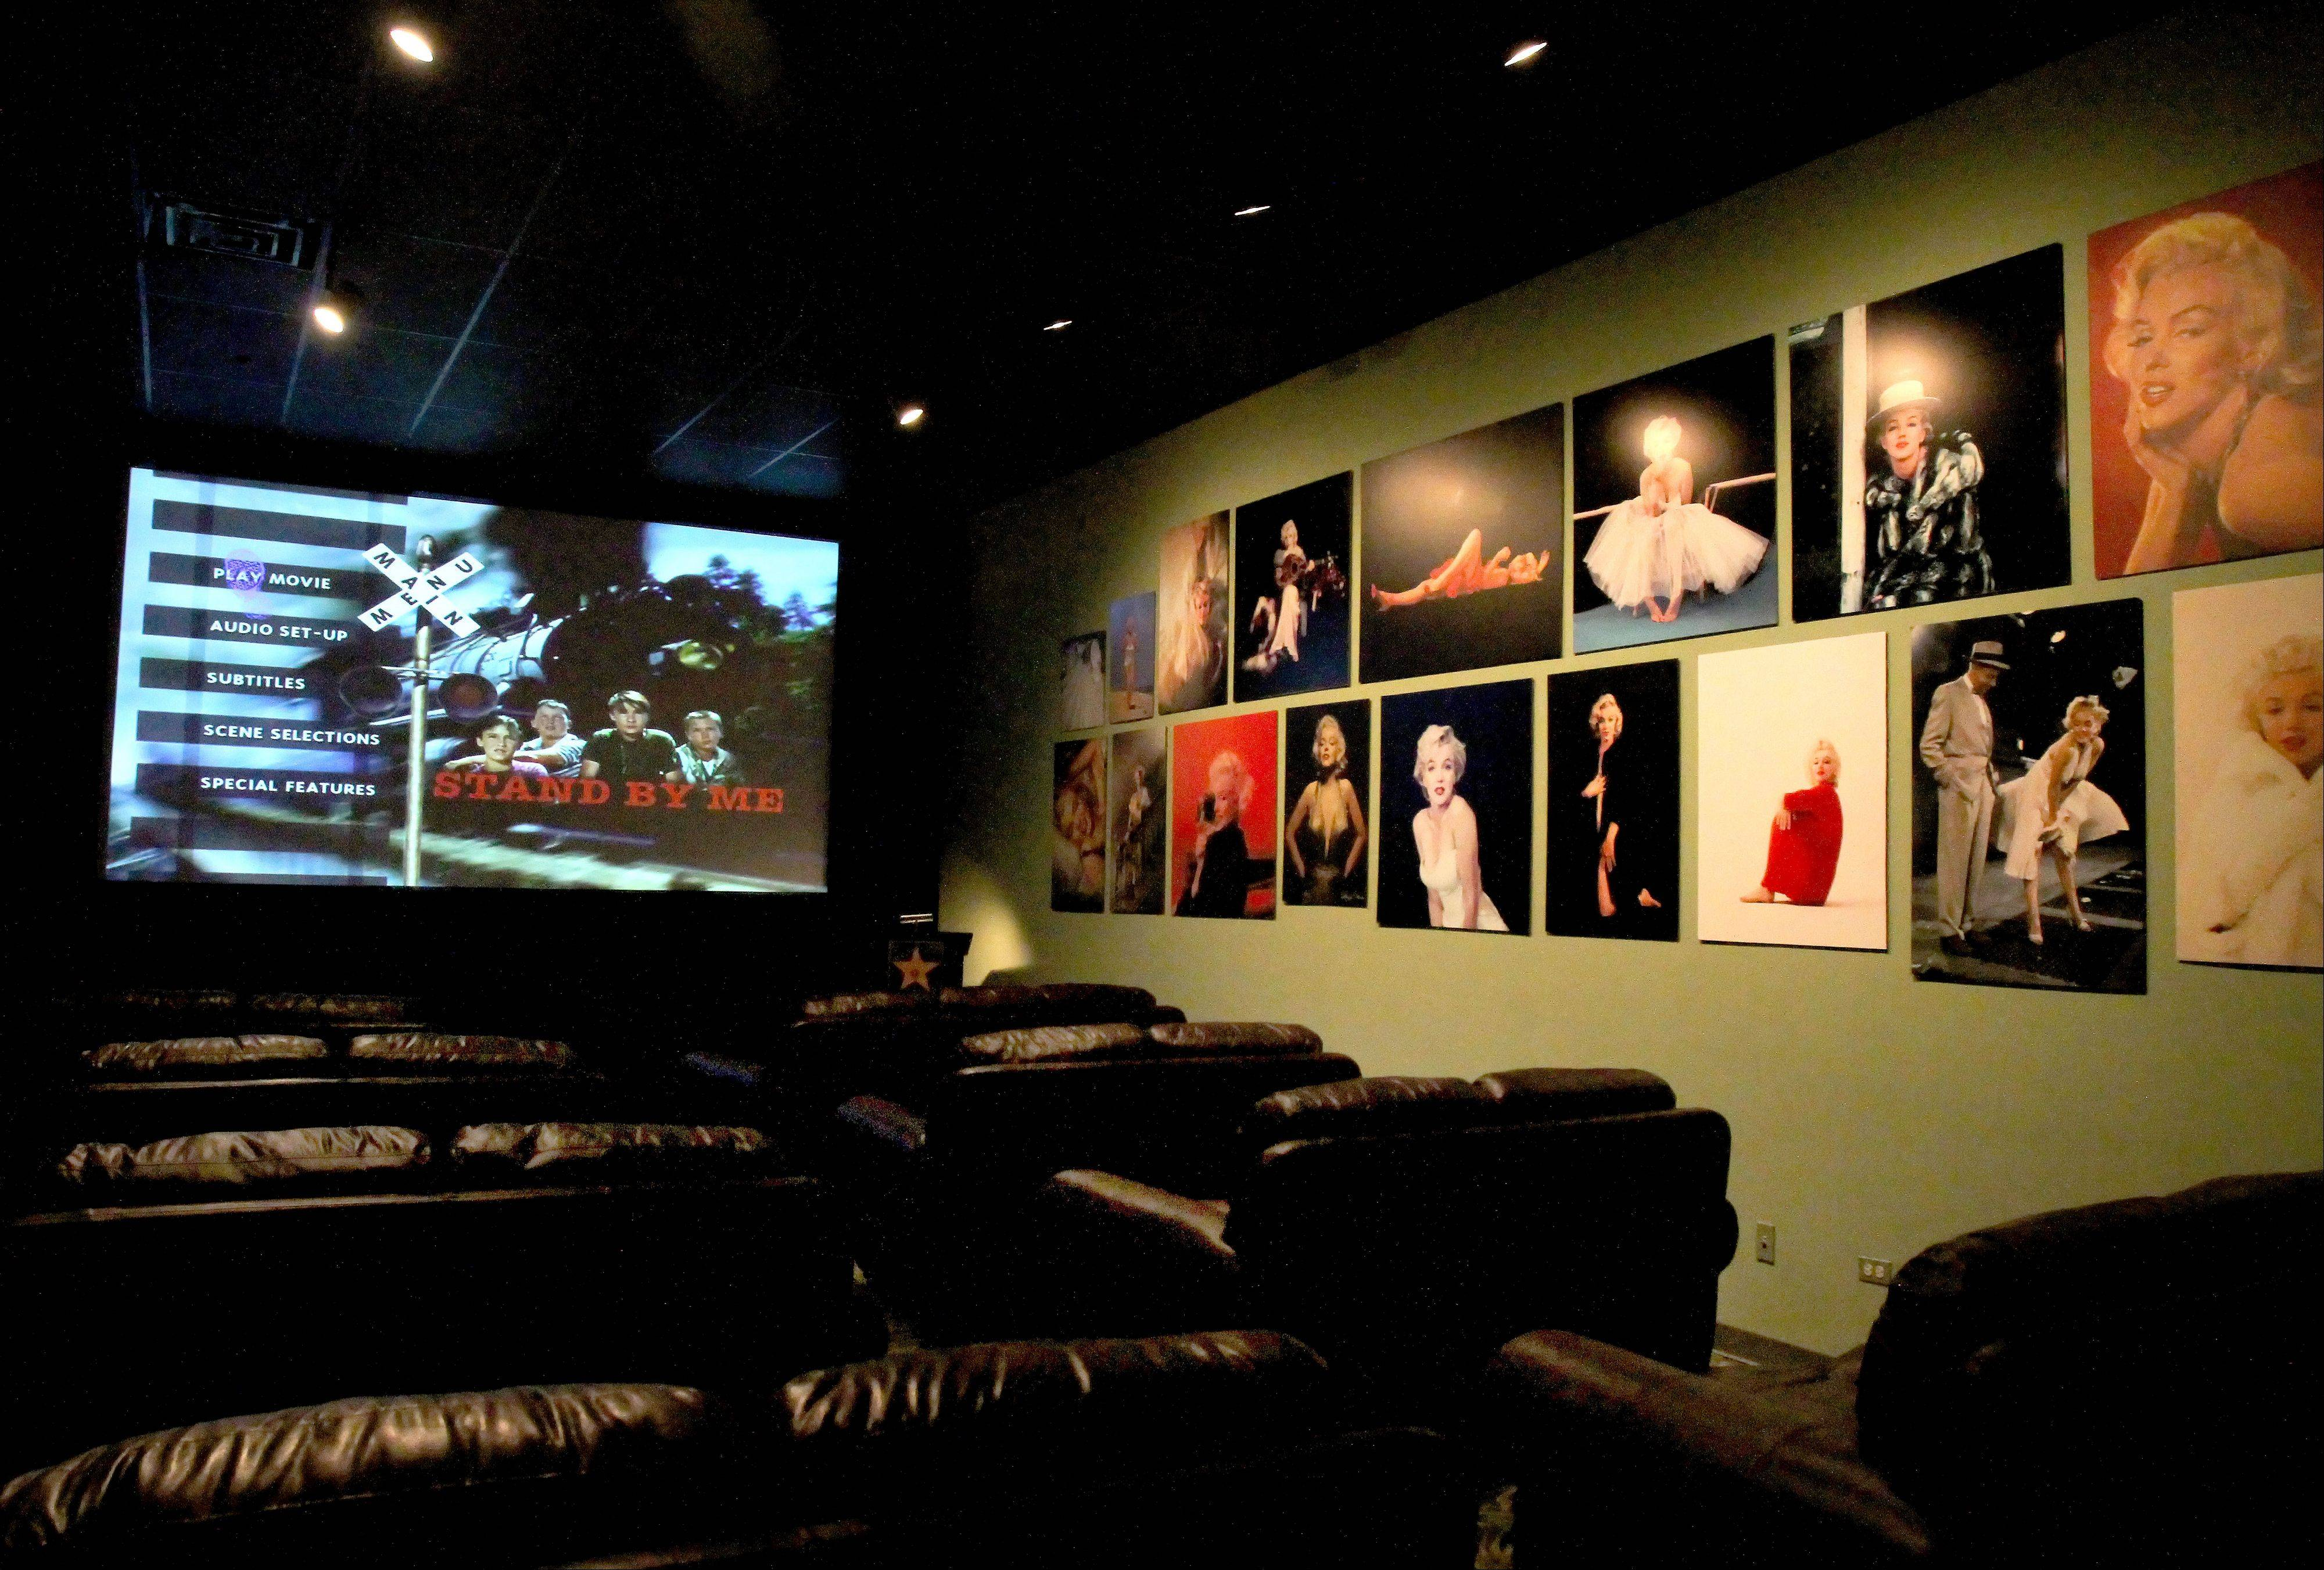 A private theater can be rented at the Hollywood Palms Cinema in Naperville.